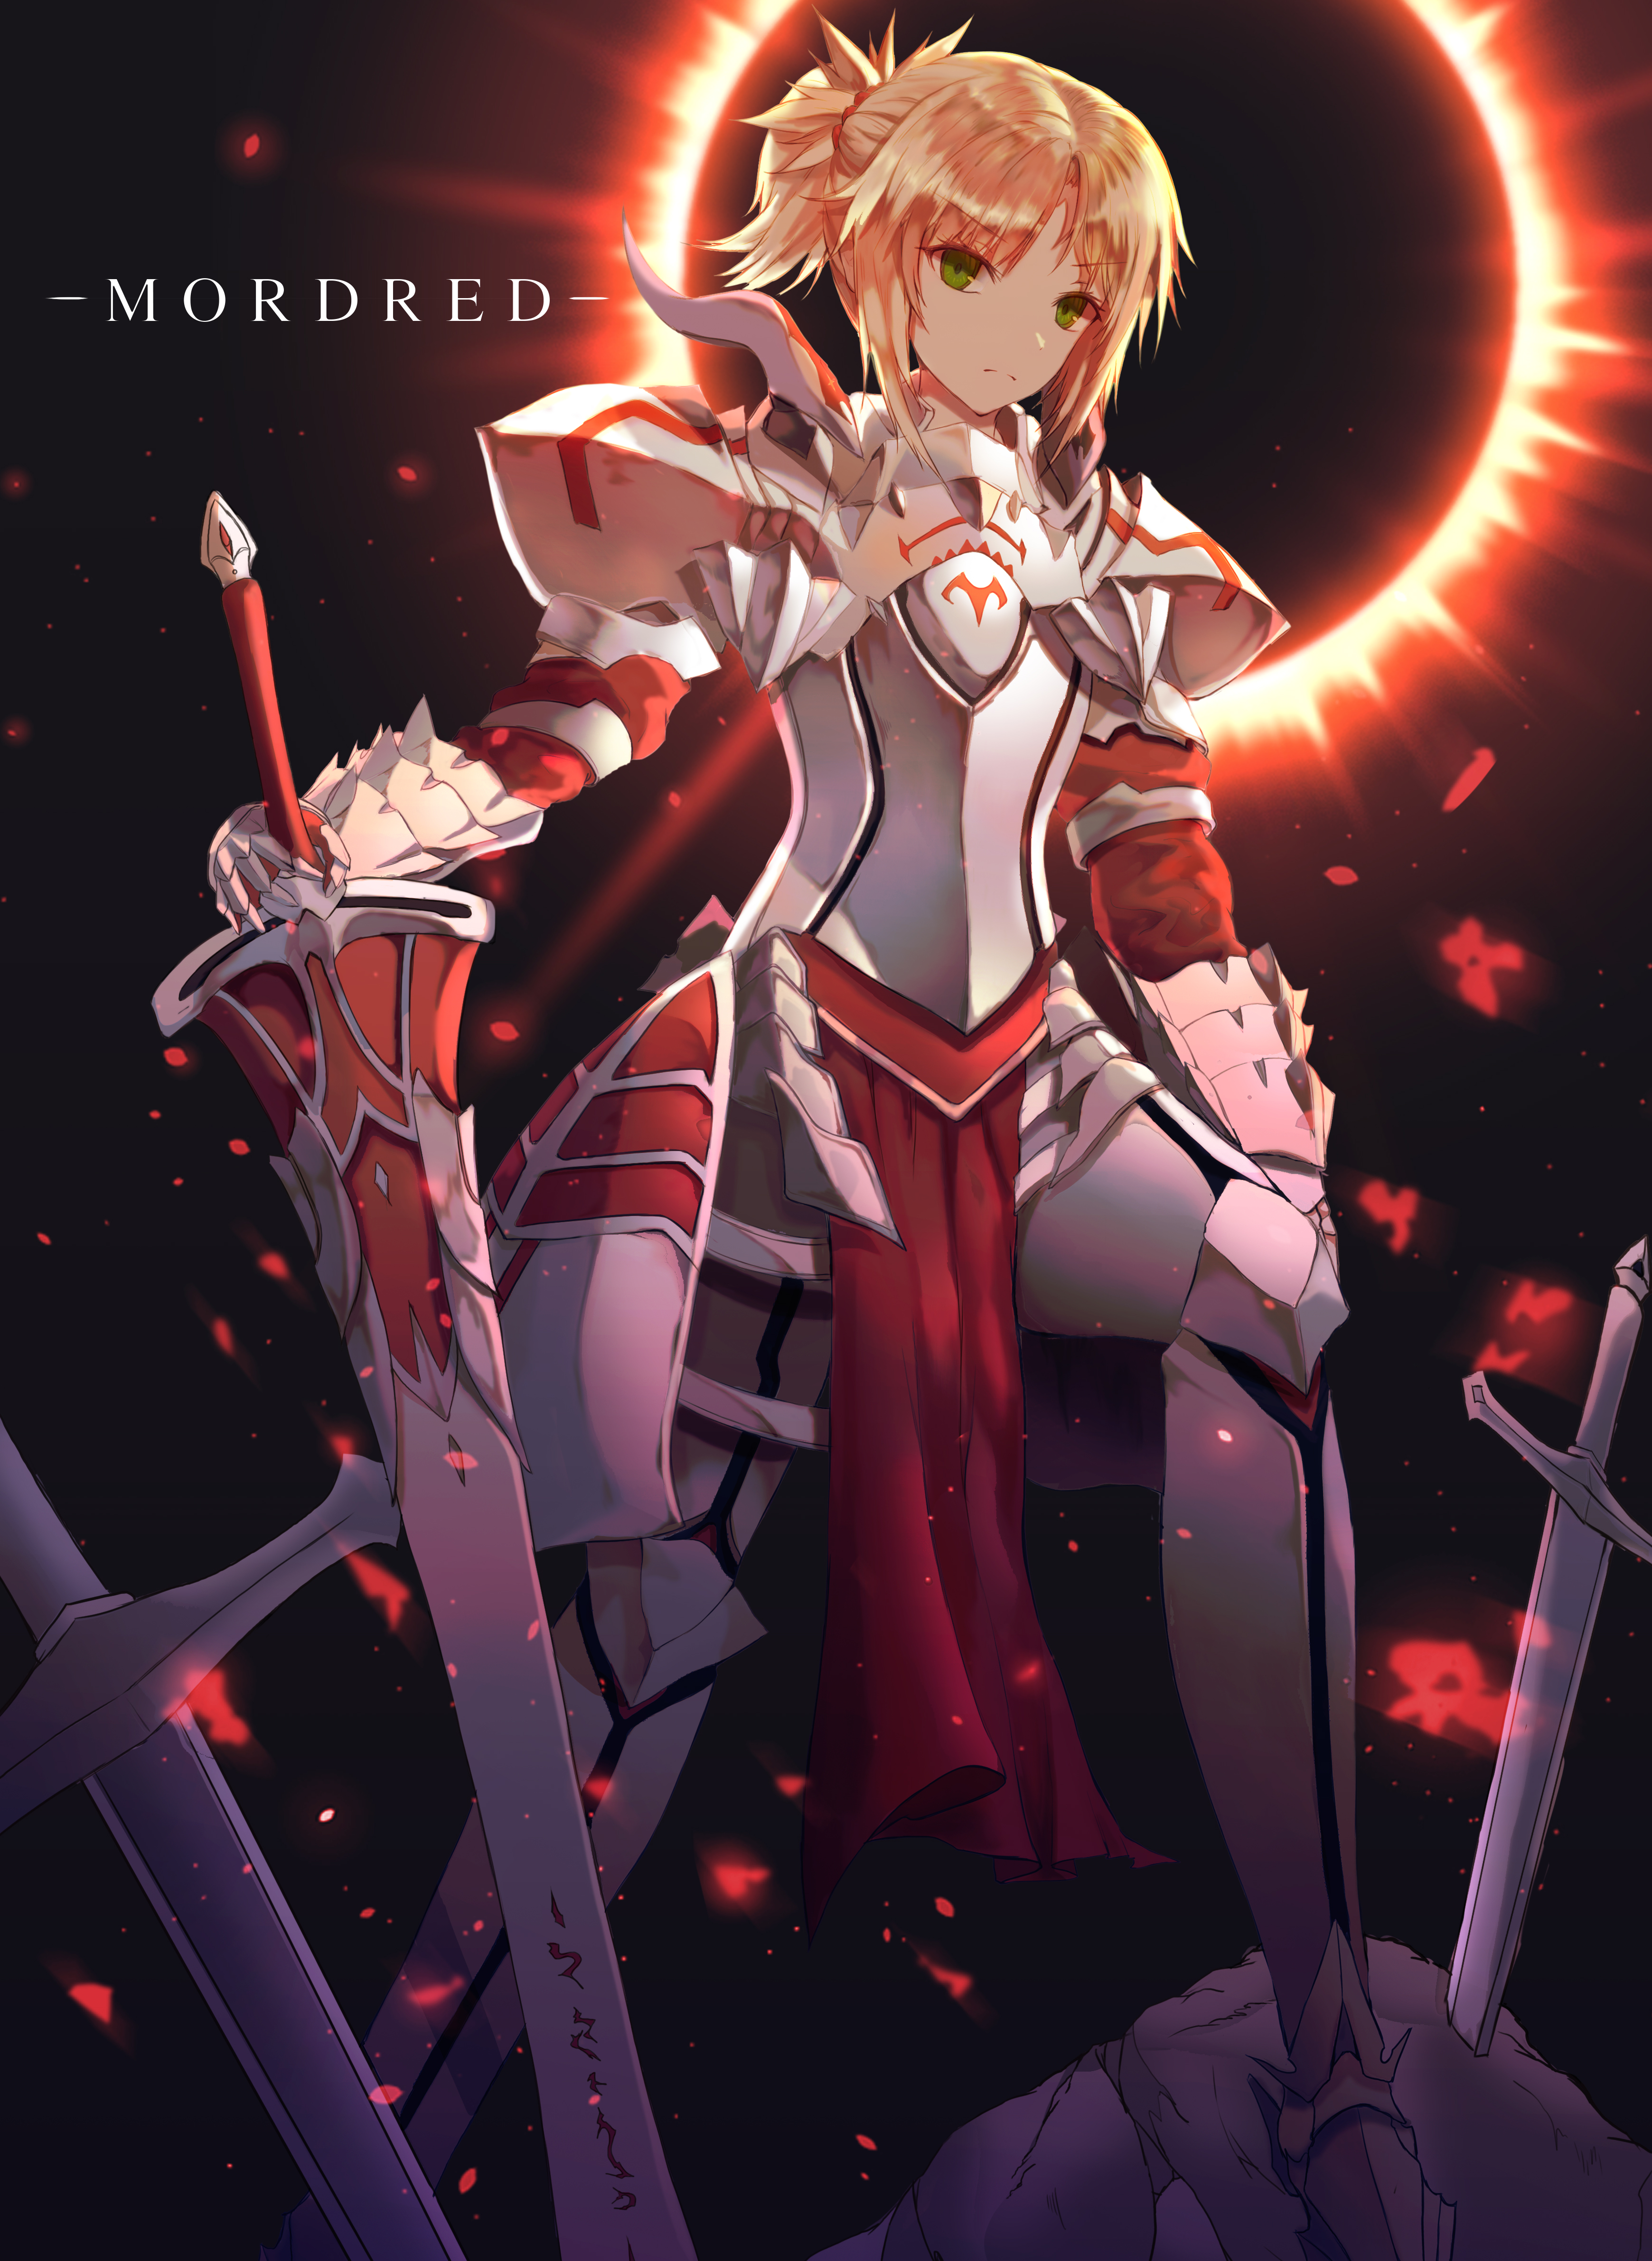 Red Saber - Fate/Apocrypha | page 6 of 29 - Zerochan Anime